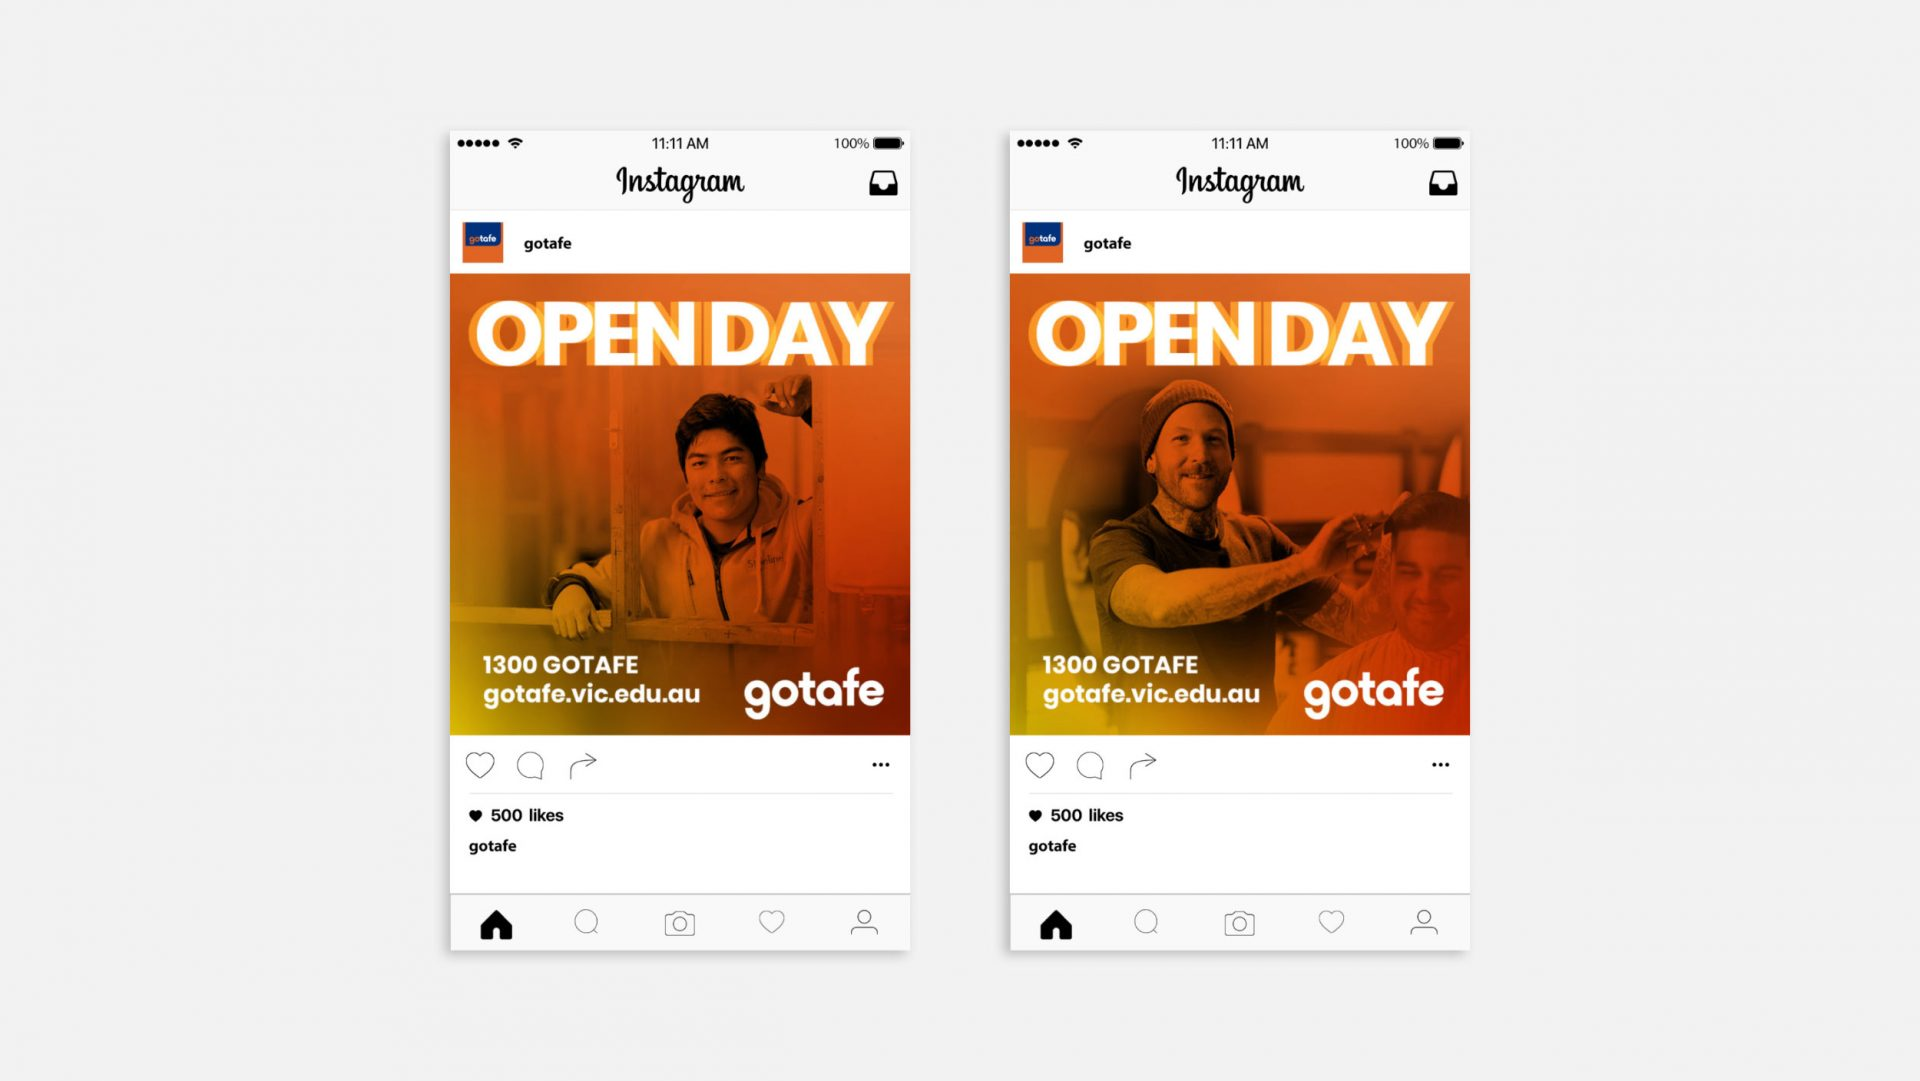 Open day social media tiles for gotafe